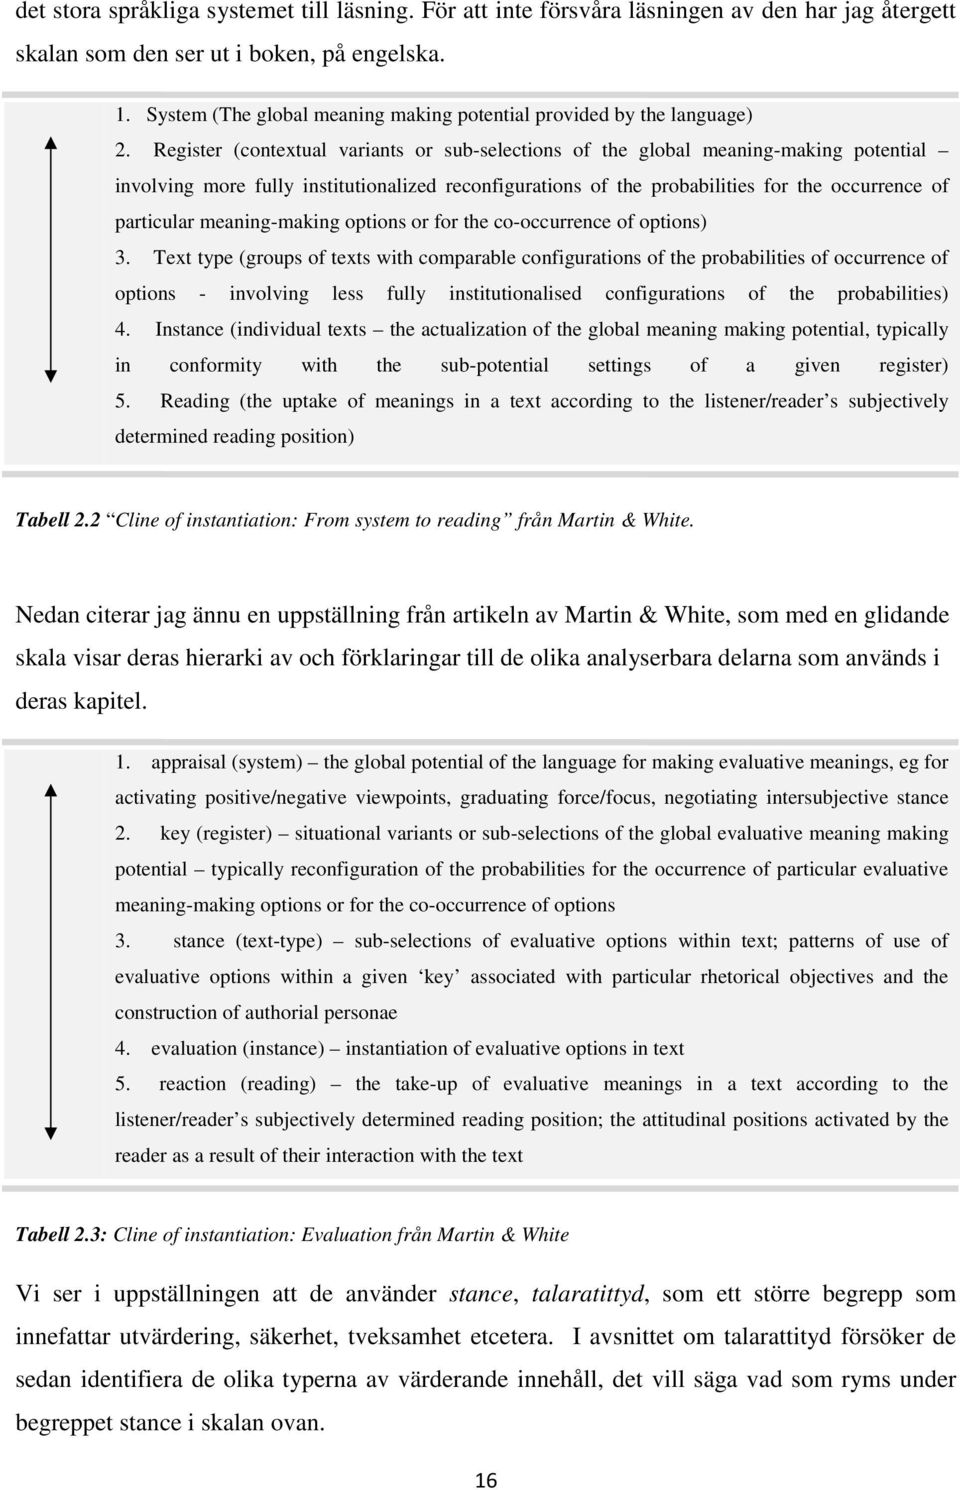 Register (contextual variants or sub-selections of the global meaning-making potential involving more fully institutionalized reconfigurations of the probabilities for the occurrence of particular